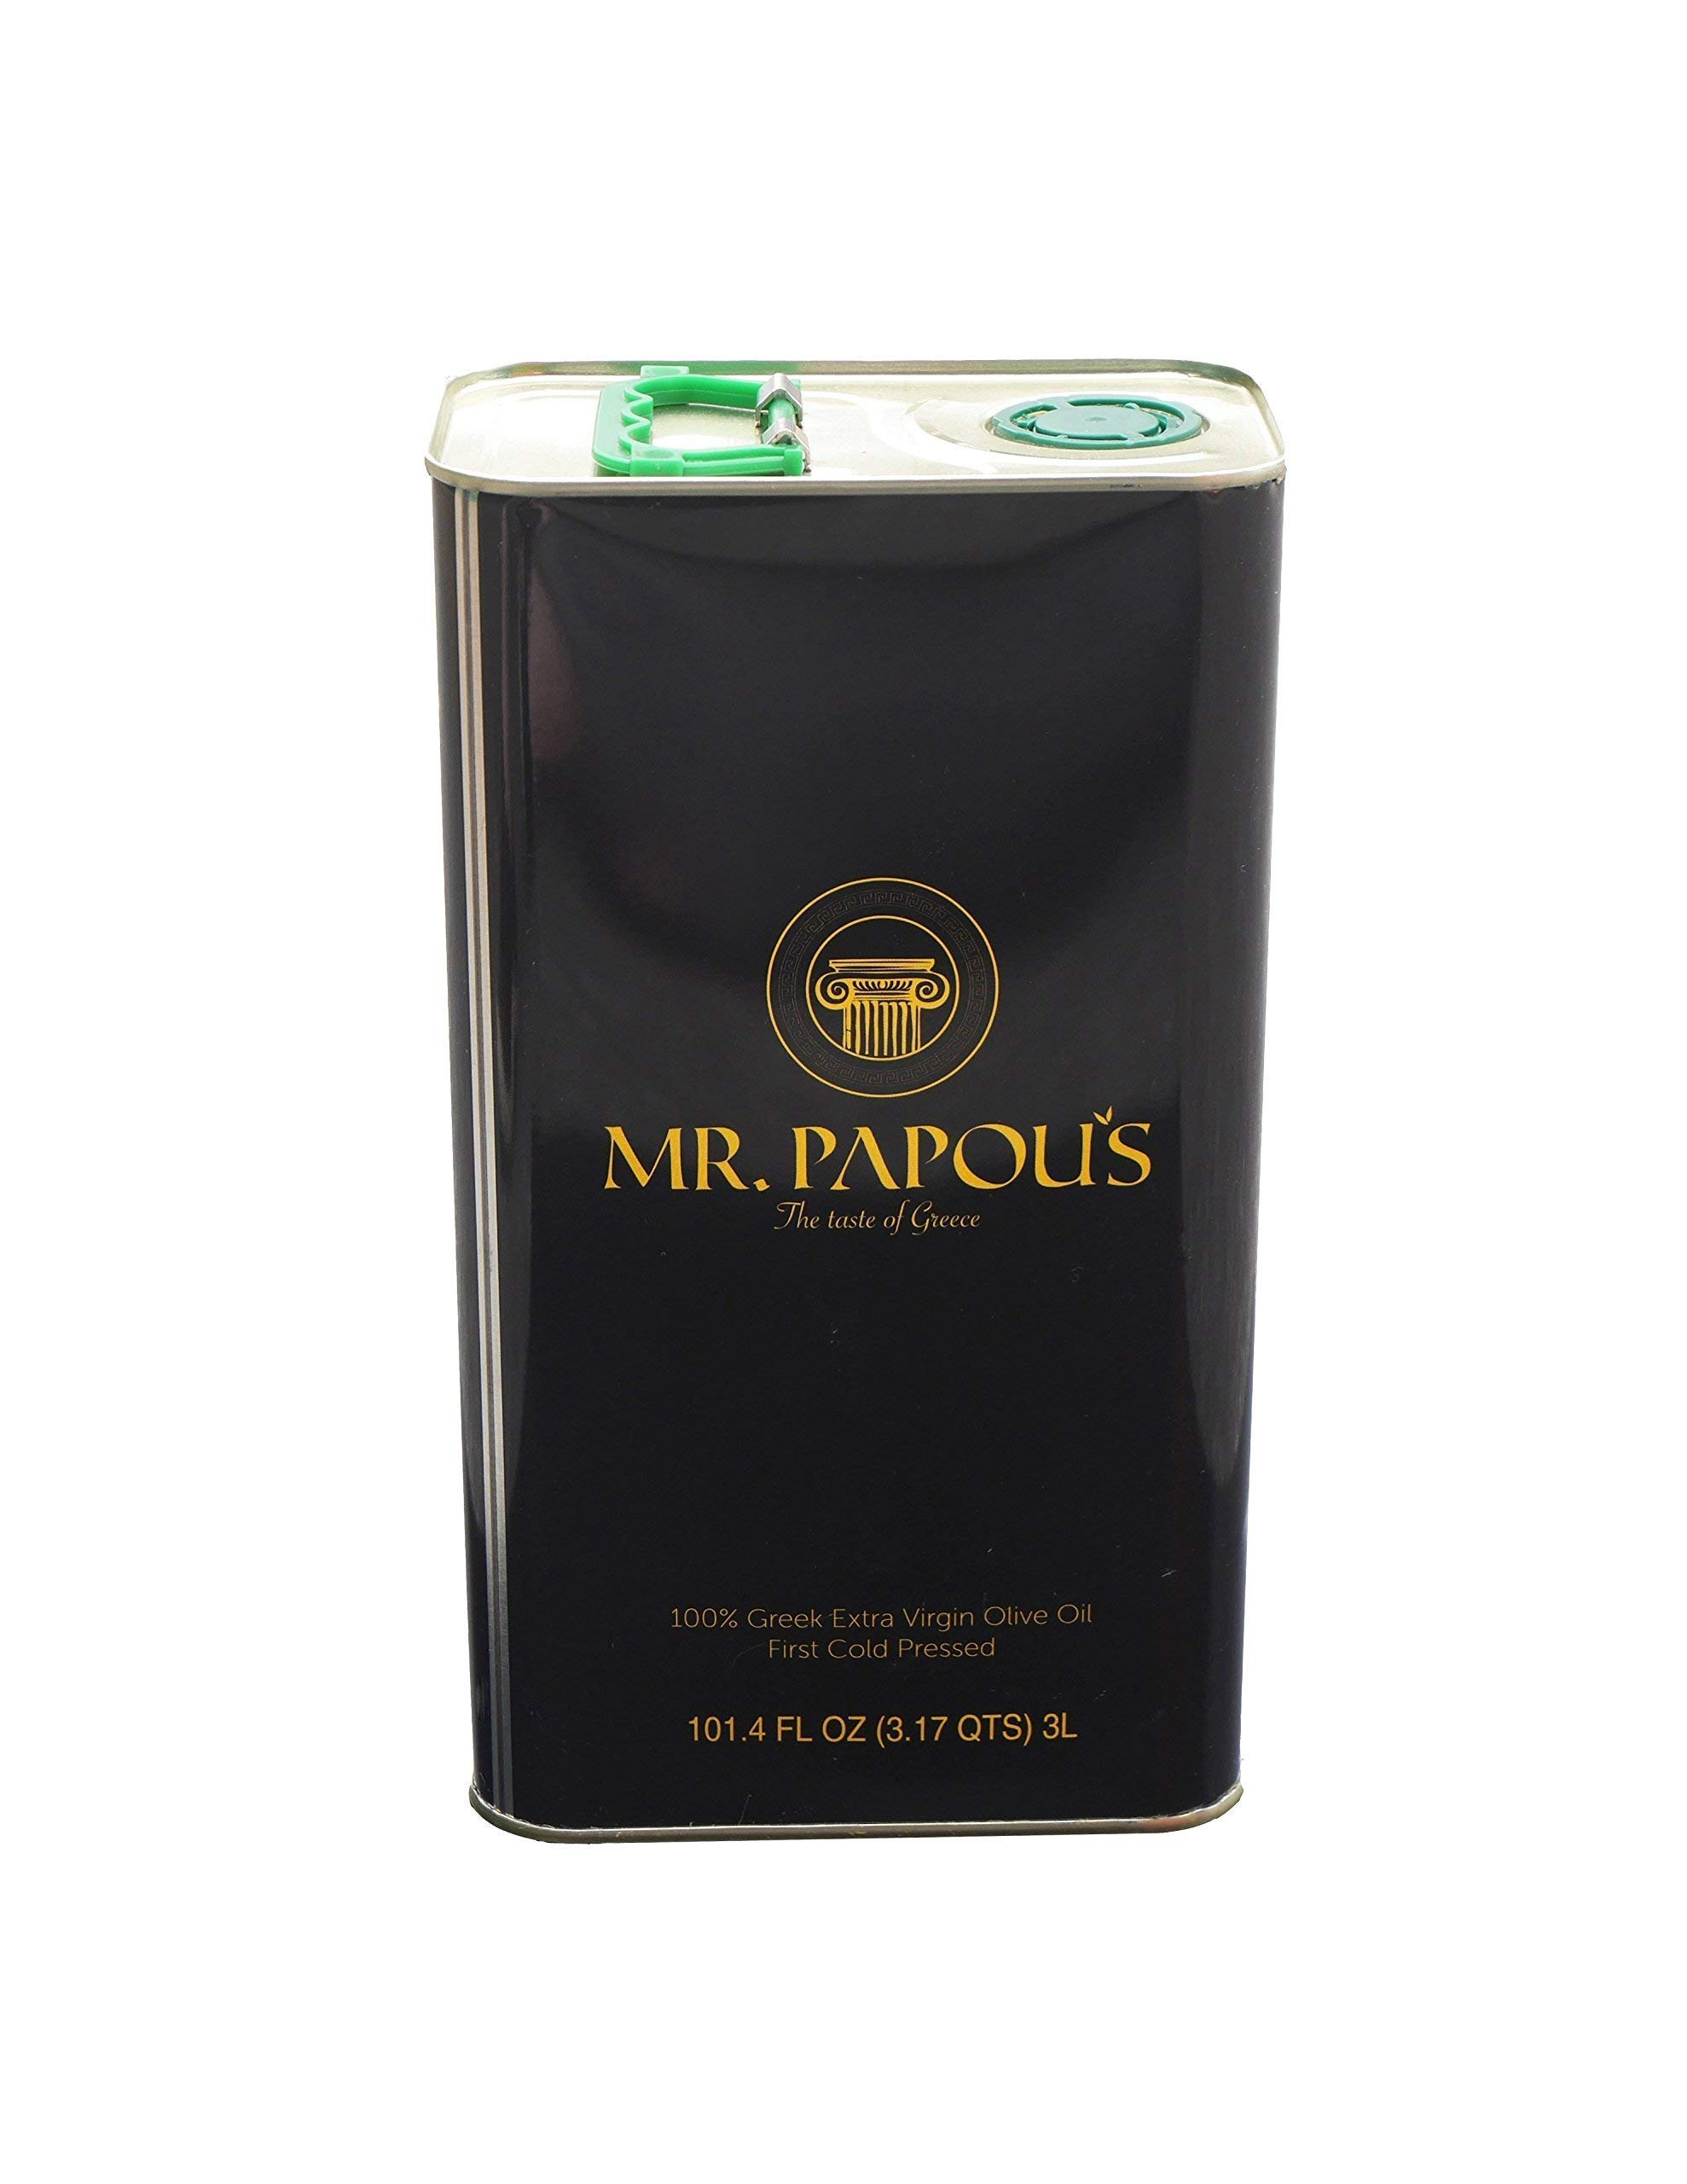 Mr. Papou's | Extra Virgin Olive Oil | First Cold Pressed | Family Owned | Harvested in Corinth, Greece | 3 Liter - 101.4 fl oz by Mr. Papou's (Image #3)